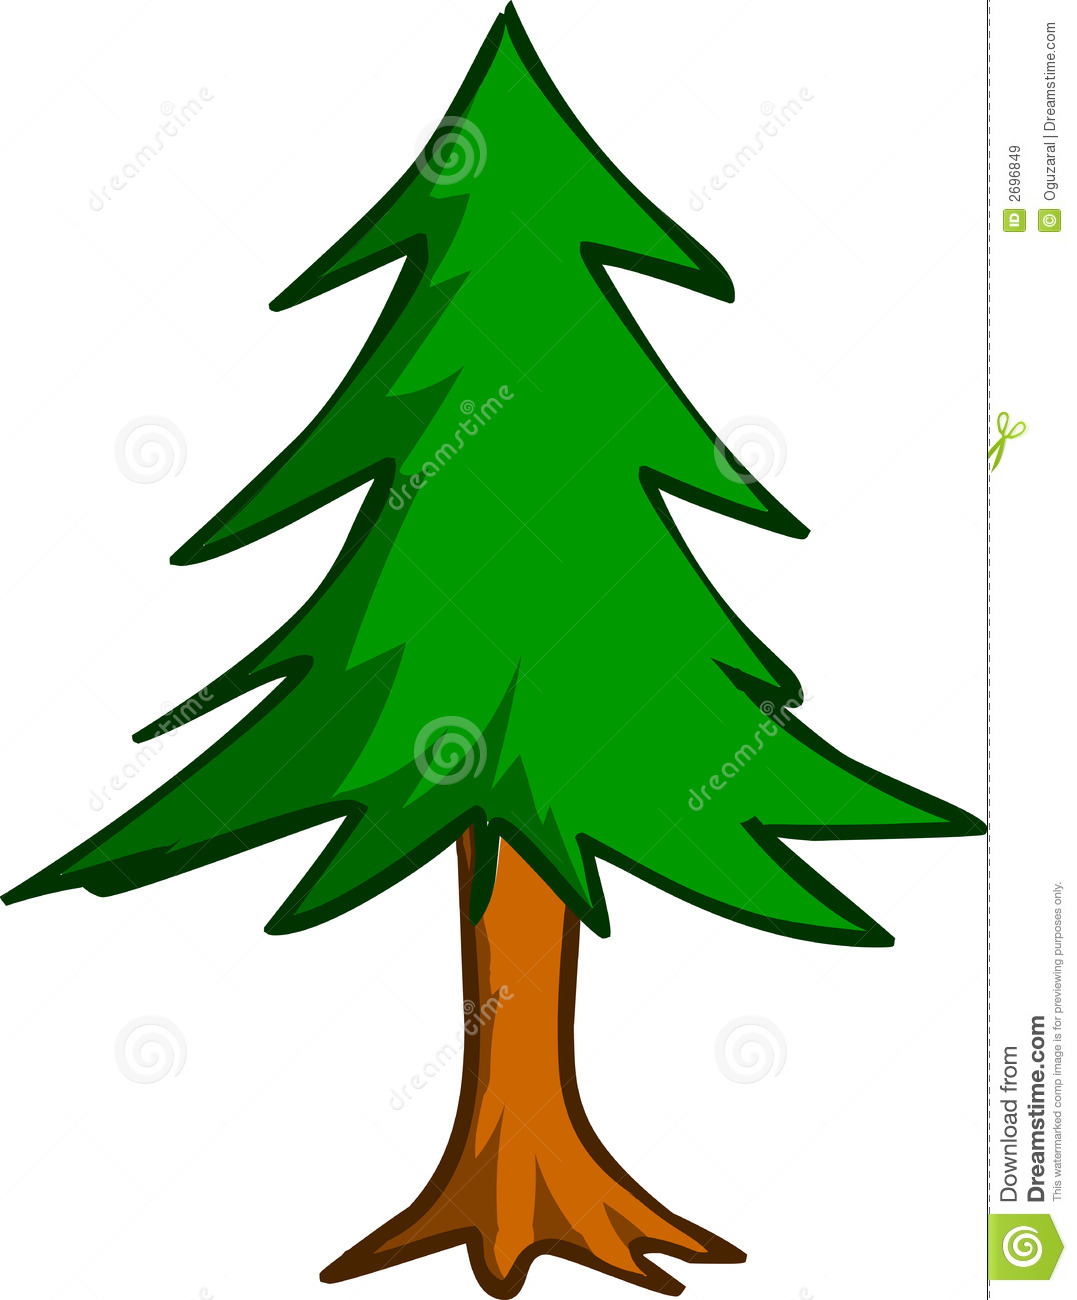 Forest Pine Tree Clipart - Clipart Suggest